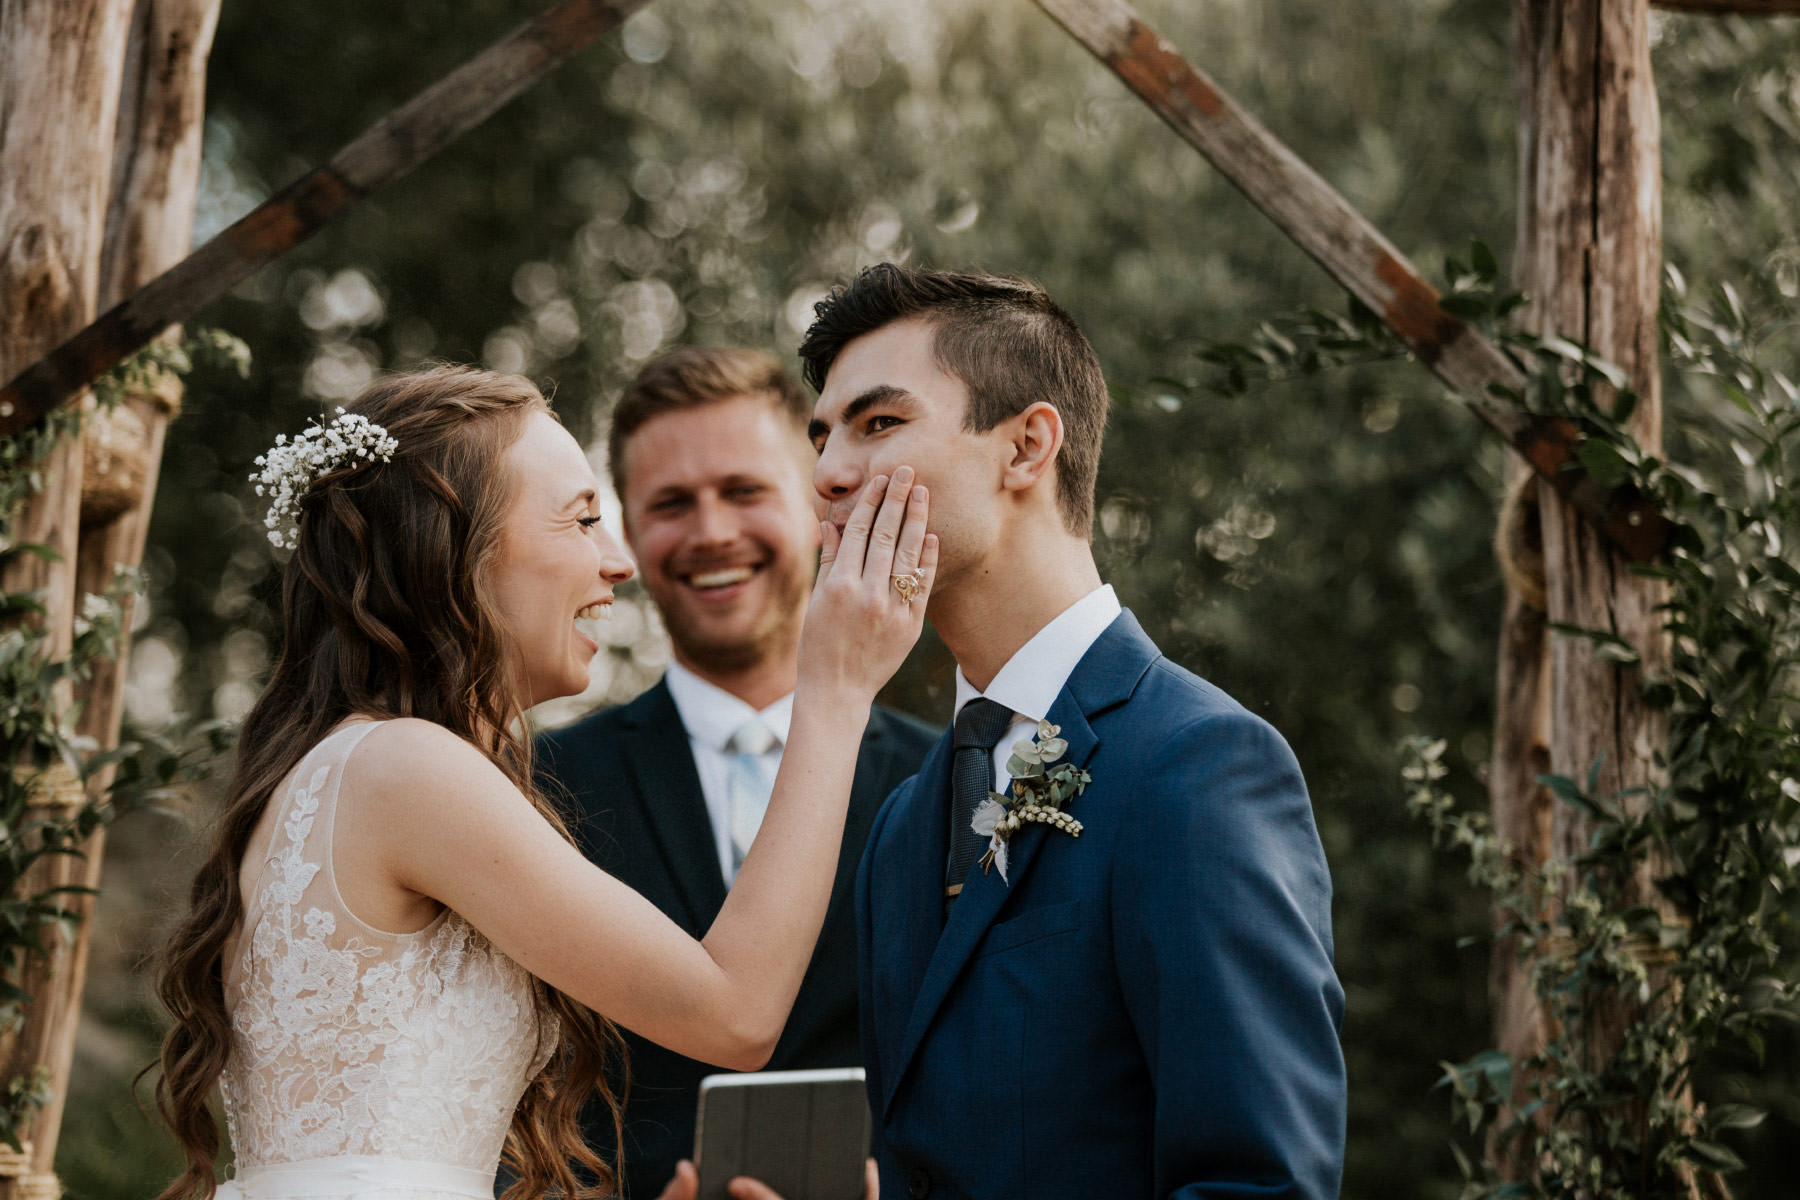 Bride wiping grooms lips after first kiss